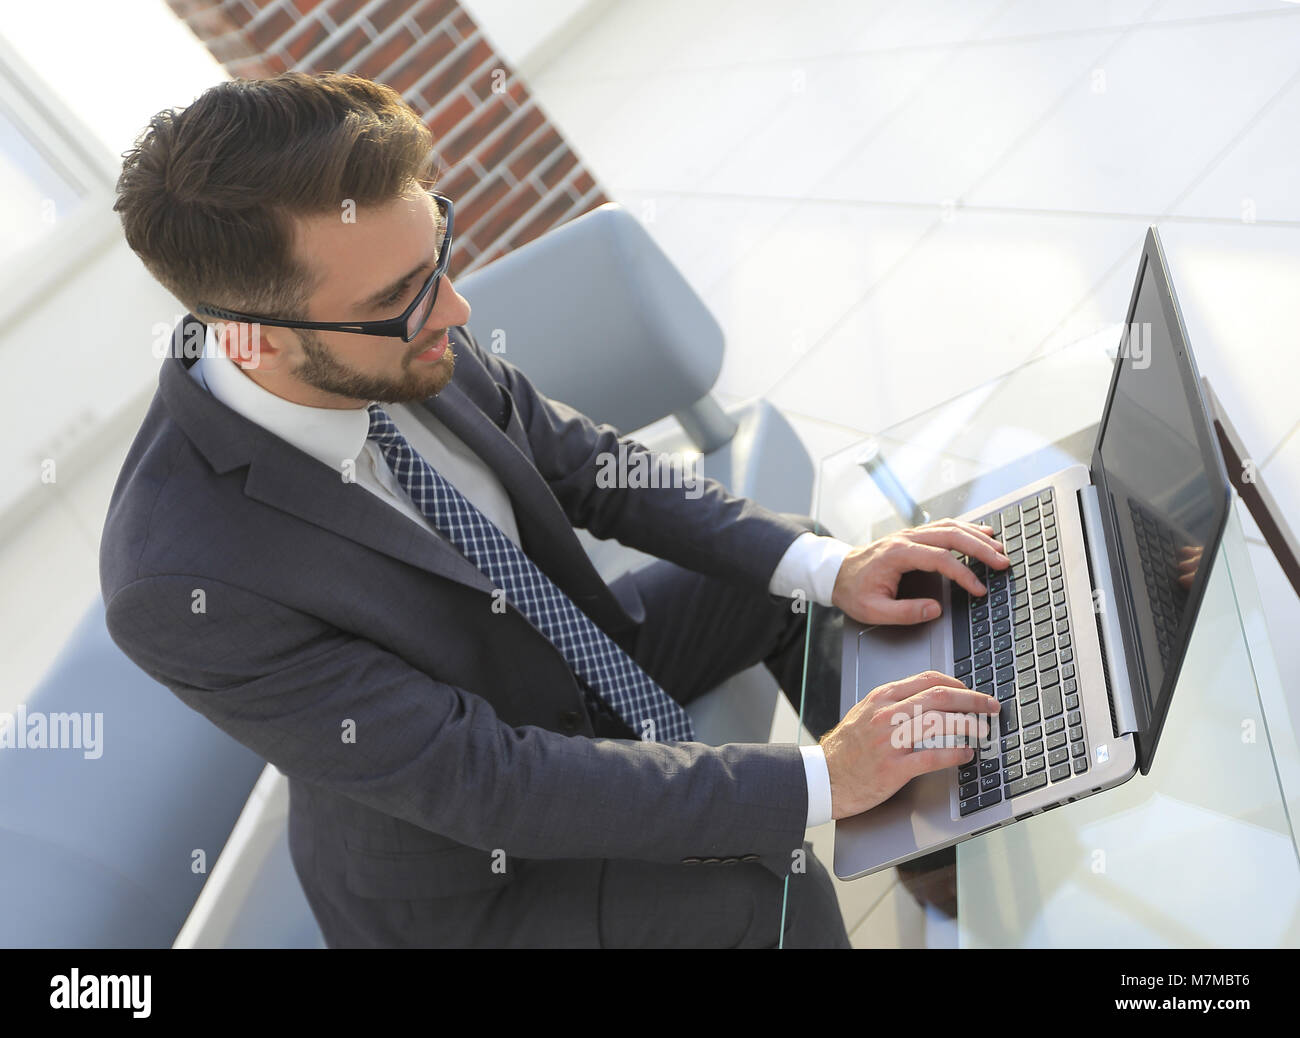 Concentrated professional IT developer with laptop - Stock Image